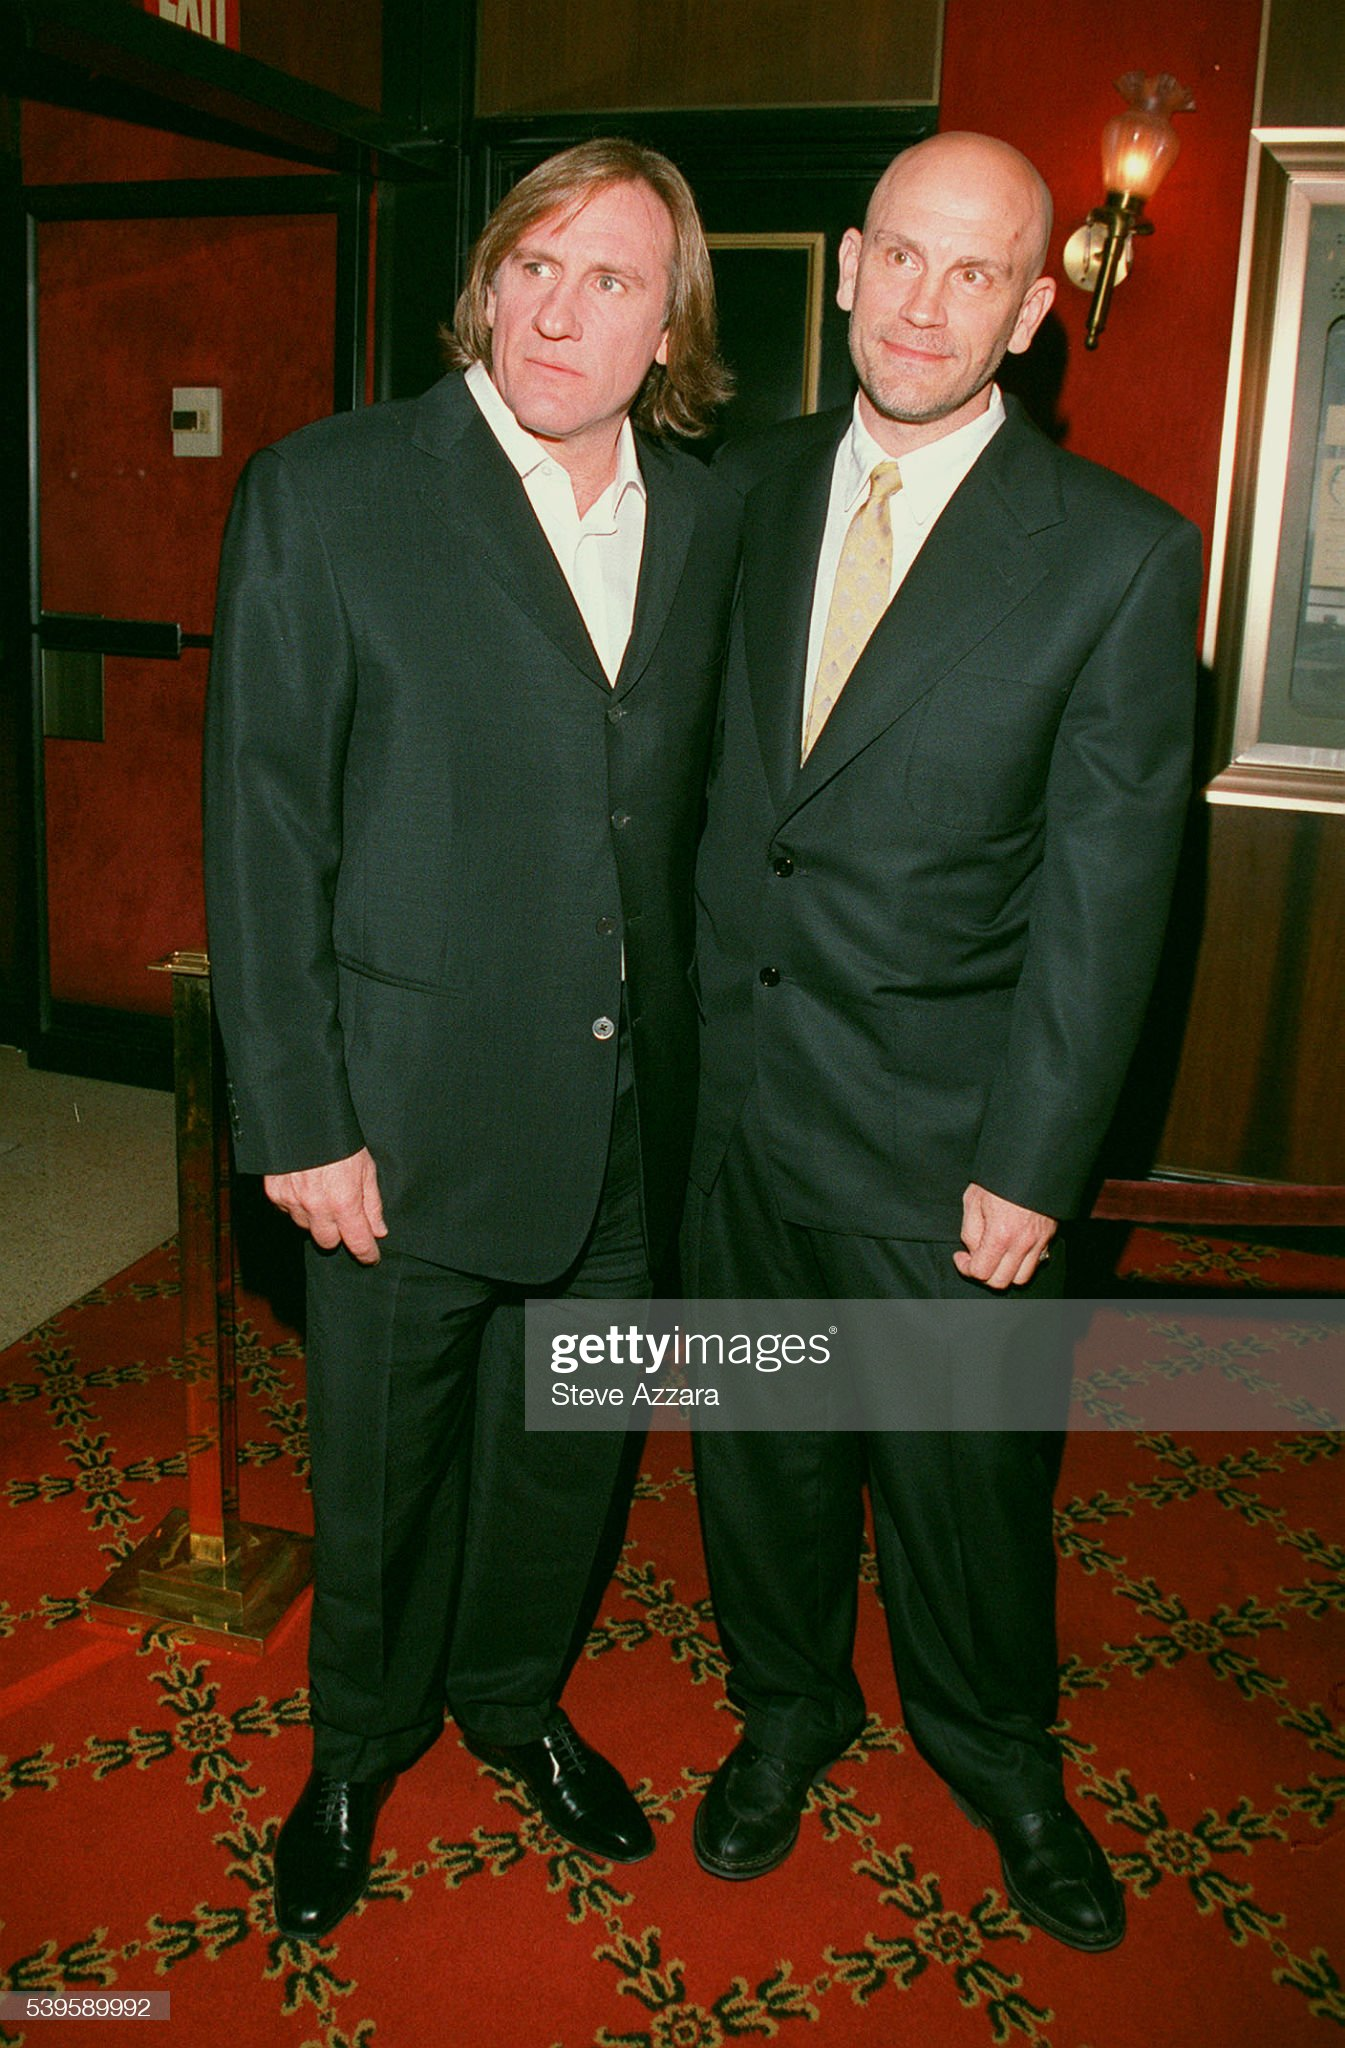 ¿Cuánto mide Gerard Depardieu? - Altura - Real height Gerard-depardieu-and-john-malkovich-at-the-ziegfeld-theater-picture-id539589992?s=2048x2048